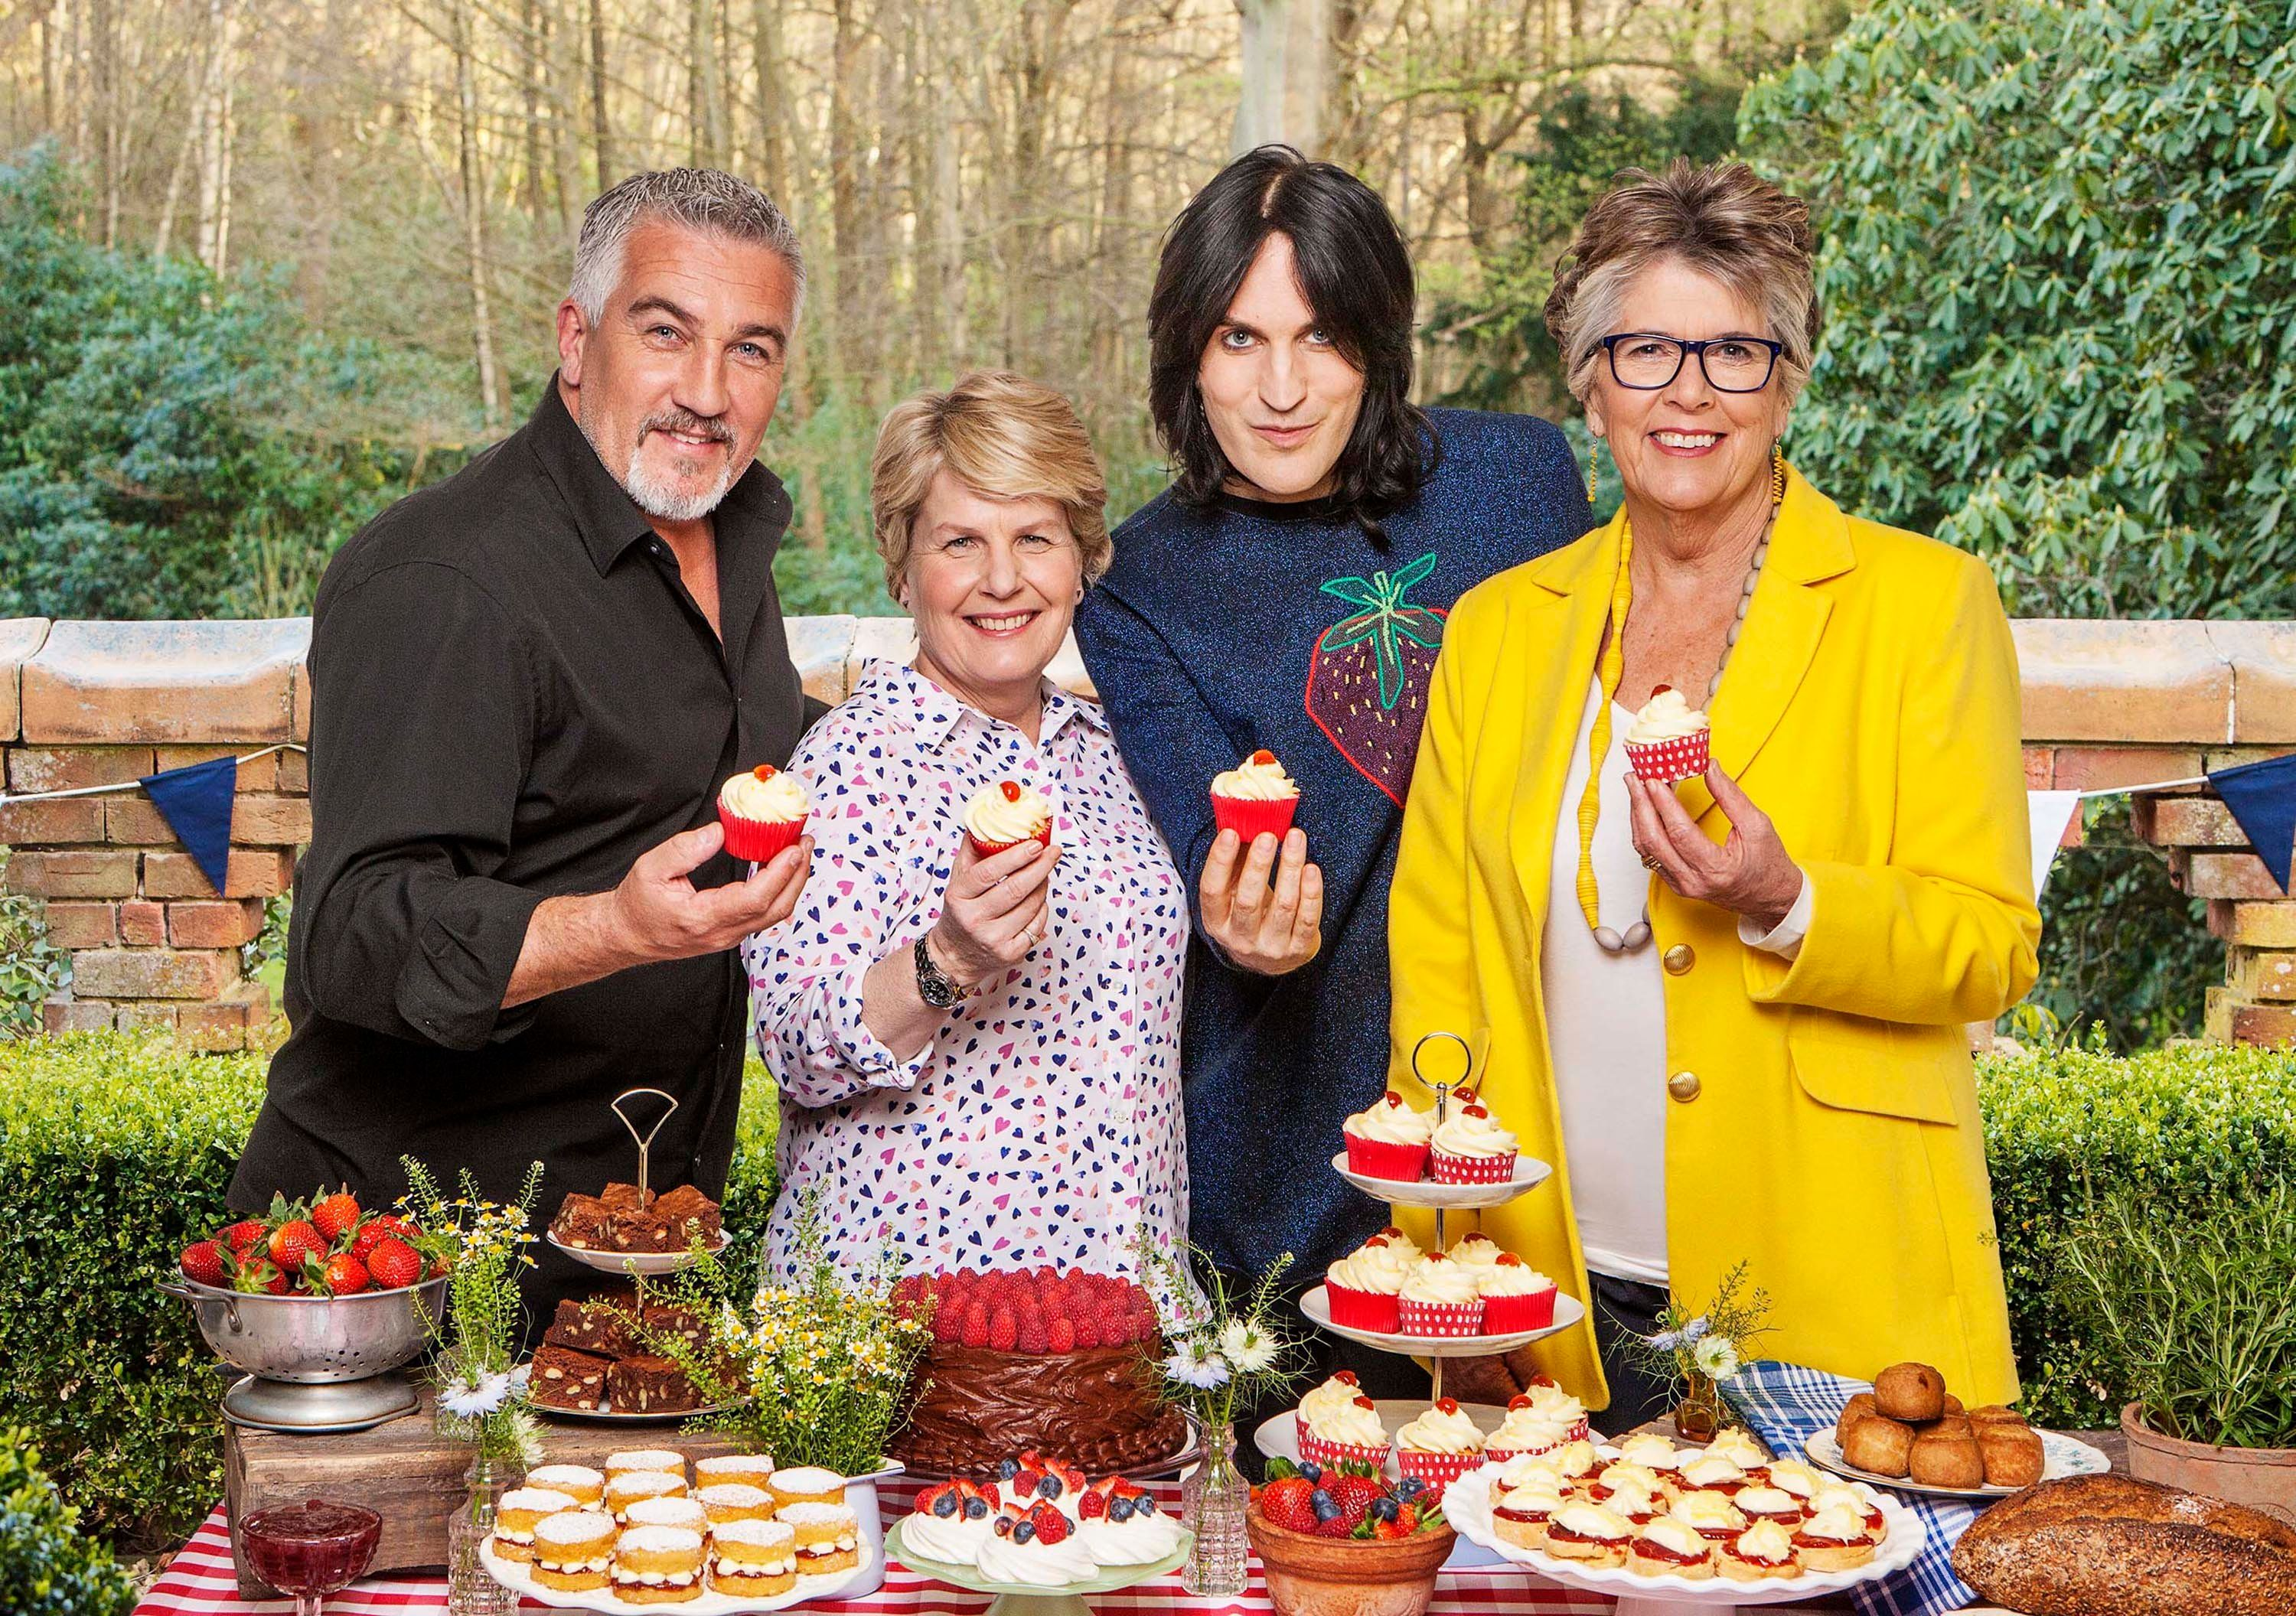 Noel Fielding Reveals The Unlikely Famous Friend Who Told Him To Do 'Bake Off'